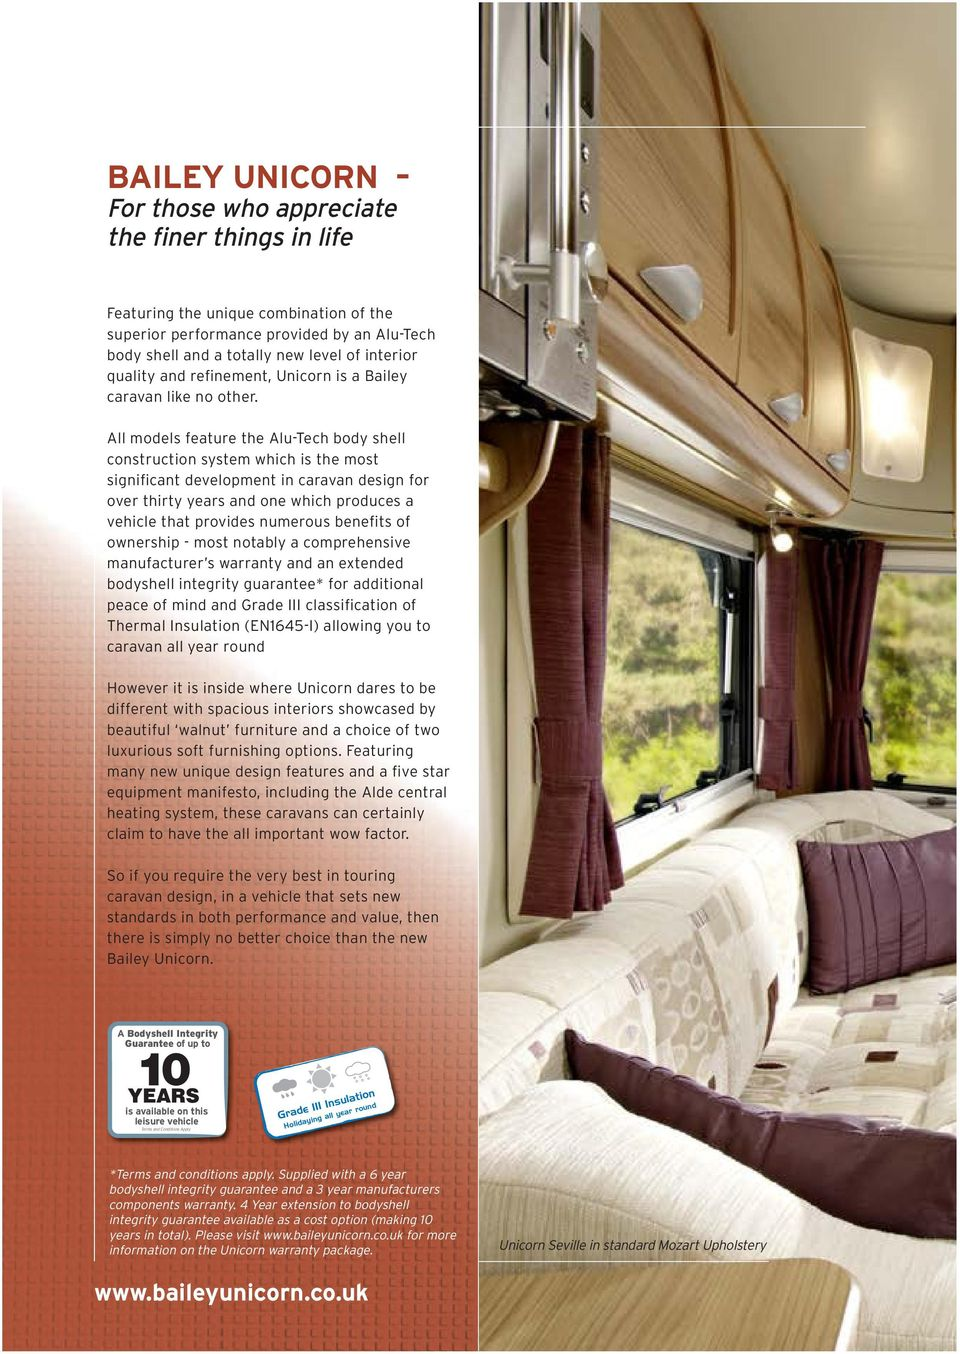 All models feature the Alu-Tech body shell construction system which is the most significant development in caravan design for over thirty years and one which produces a vehicle that provides